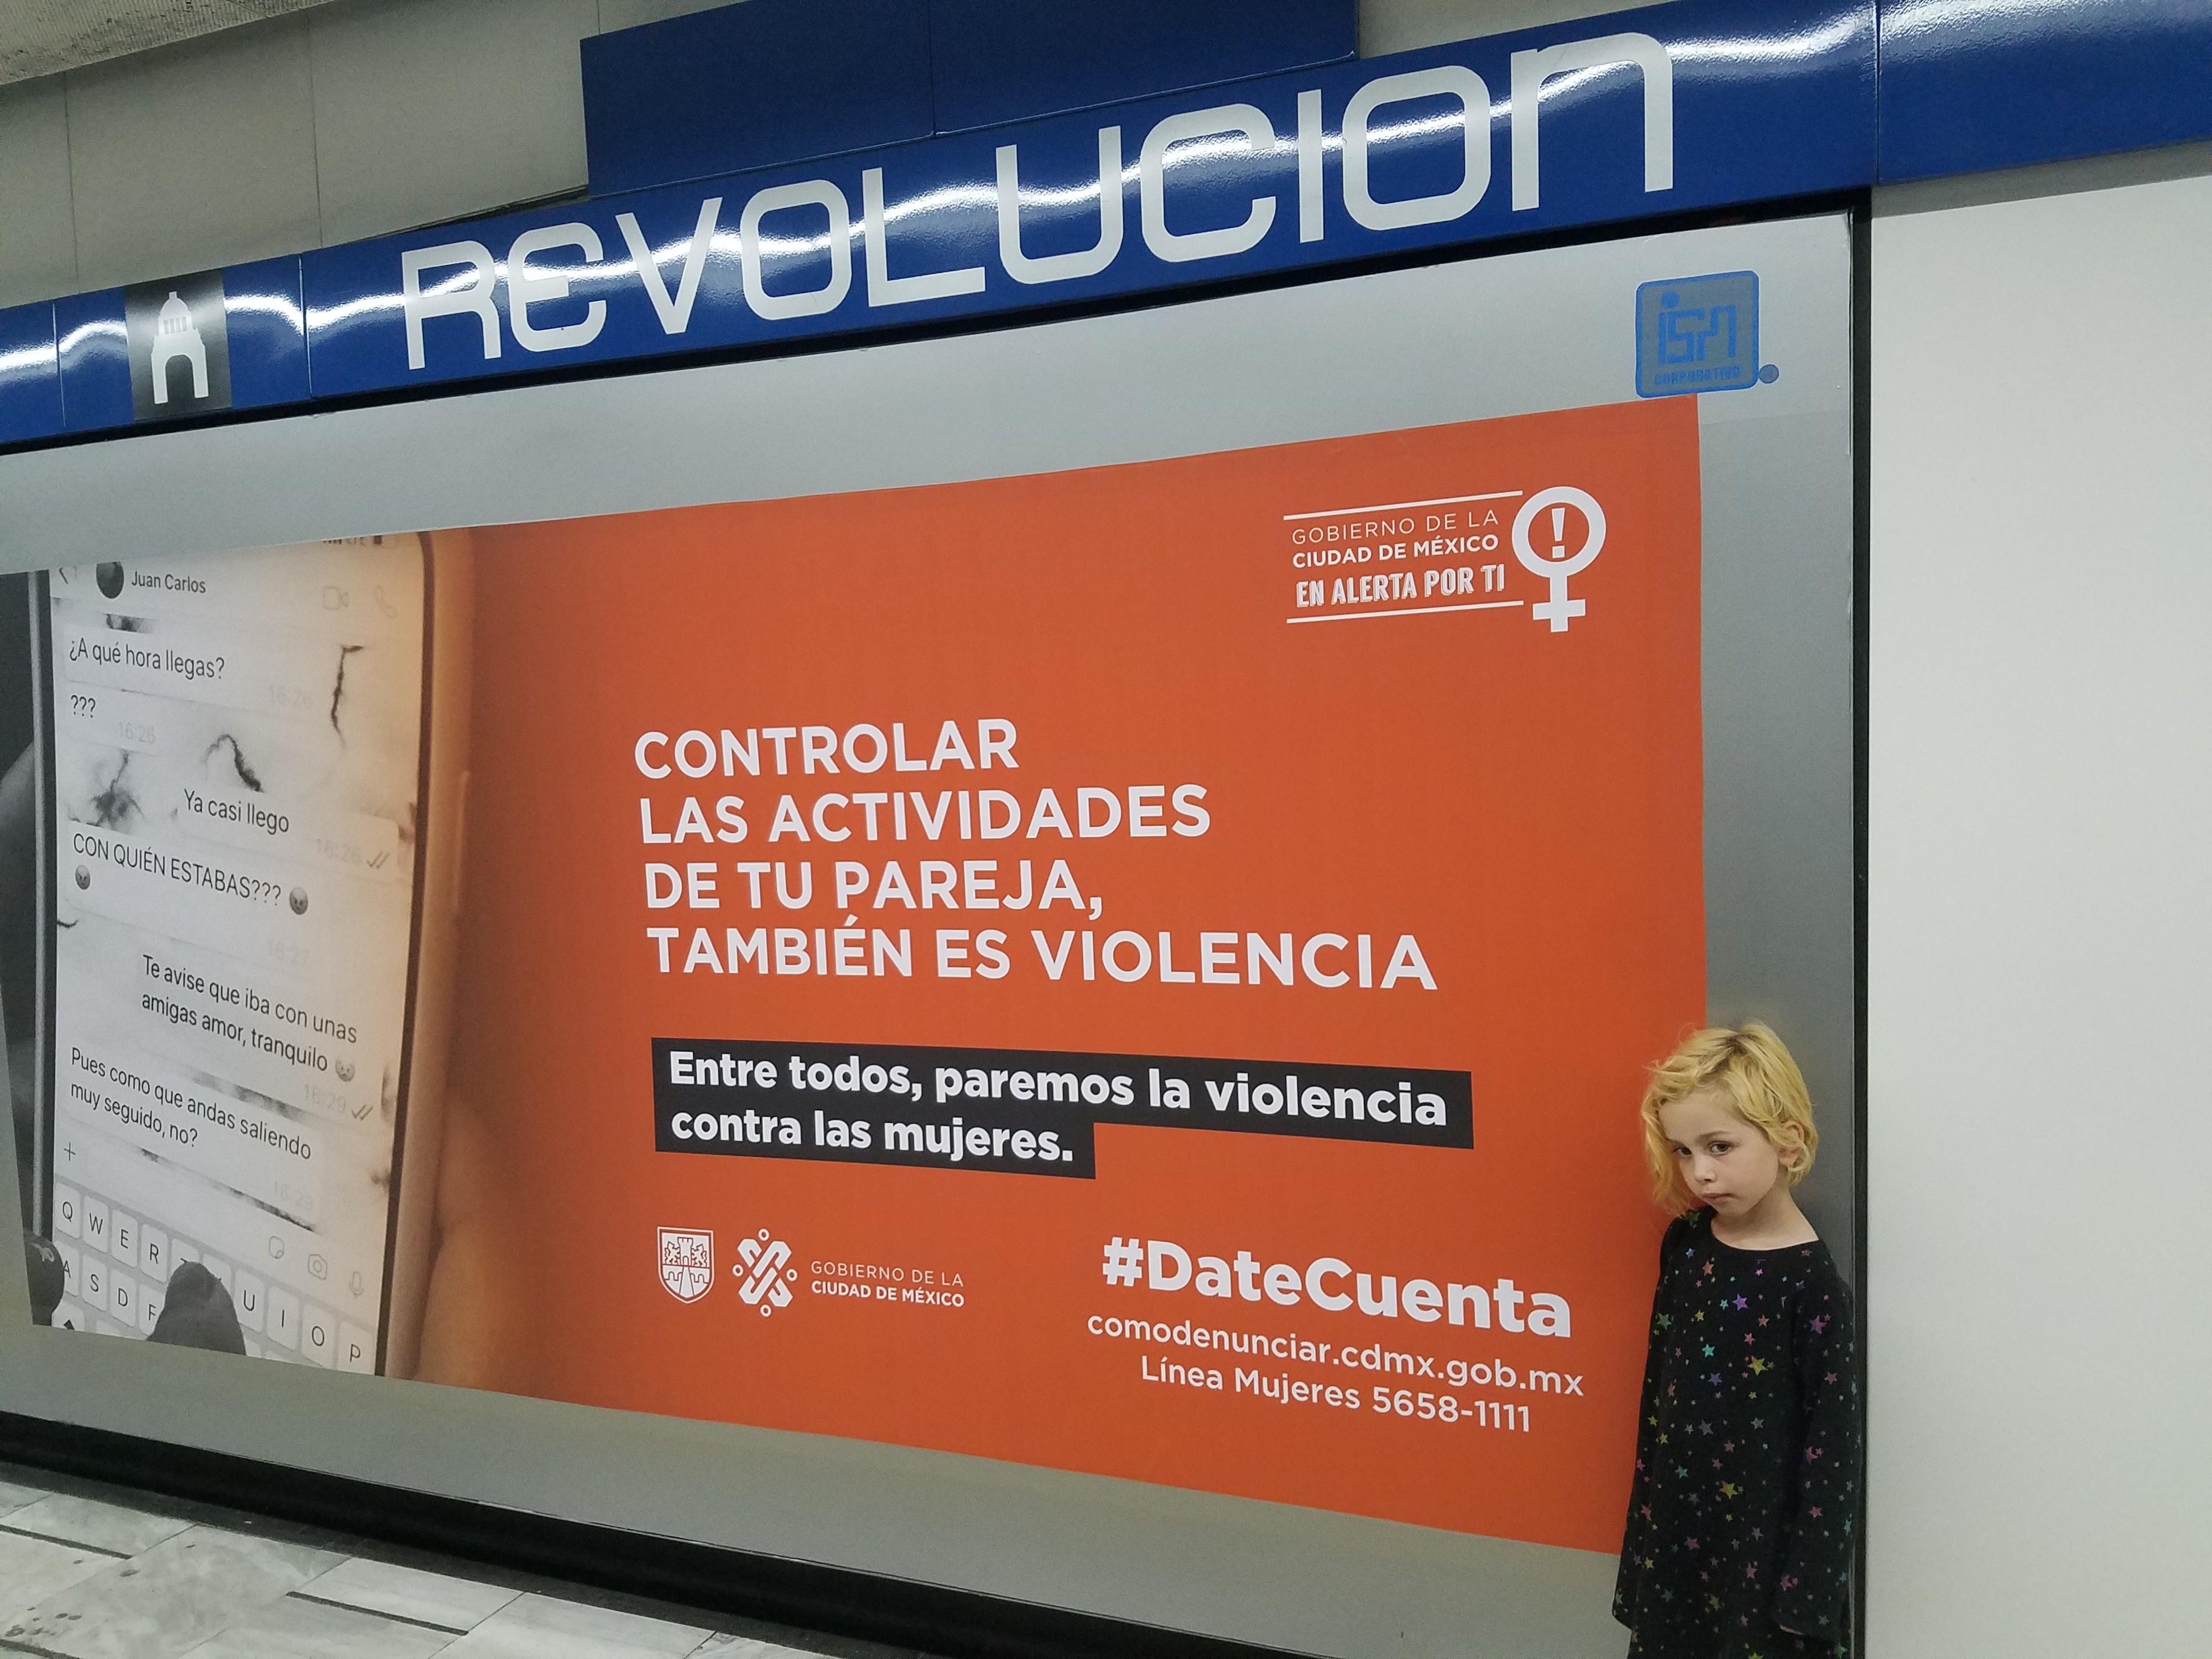 Blonde girl stands in front of a #DateCuenta poster in the CDMX Metro station, under the sign for subway station REVOLUCIÓN